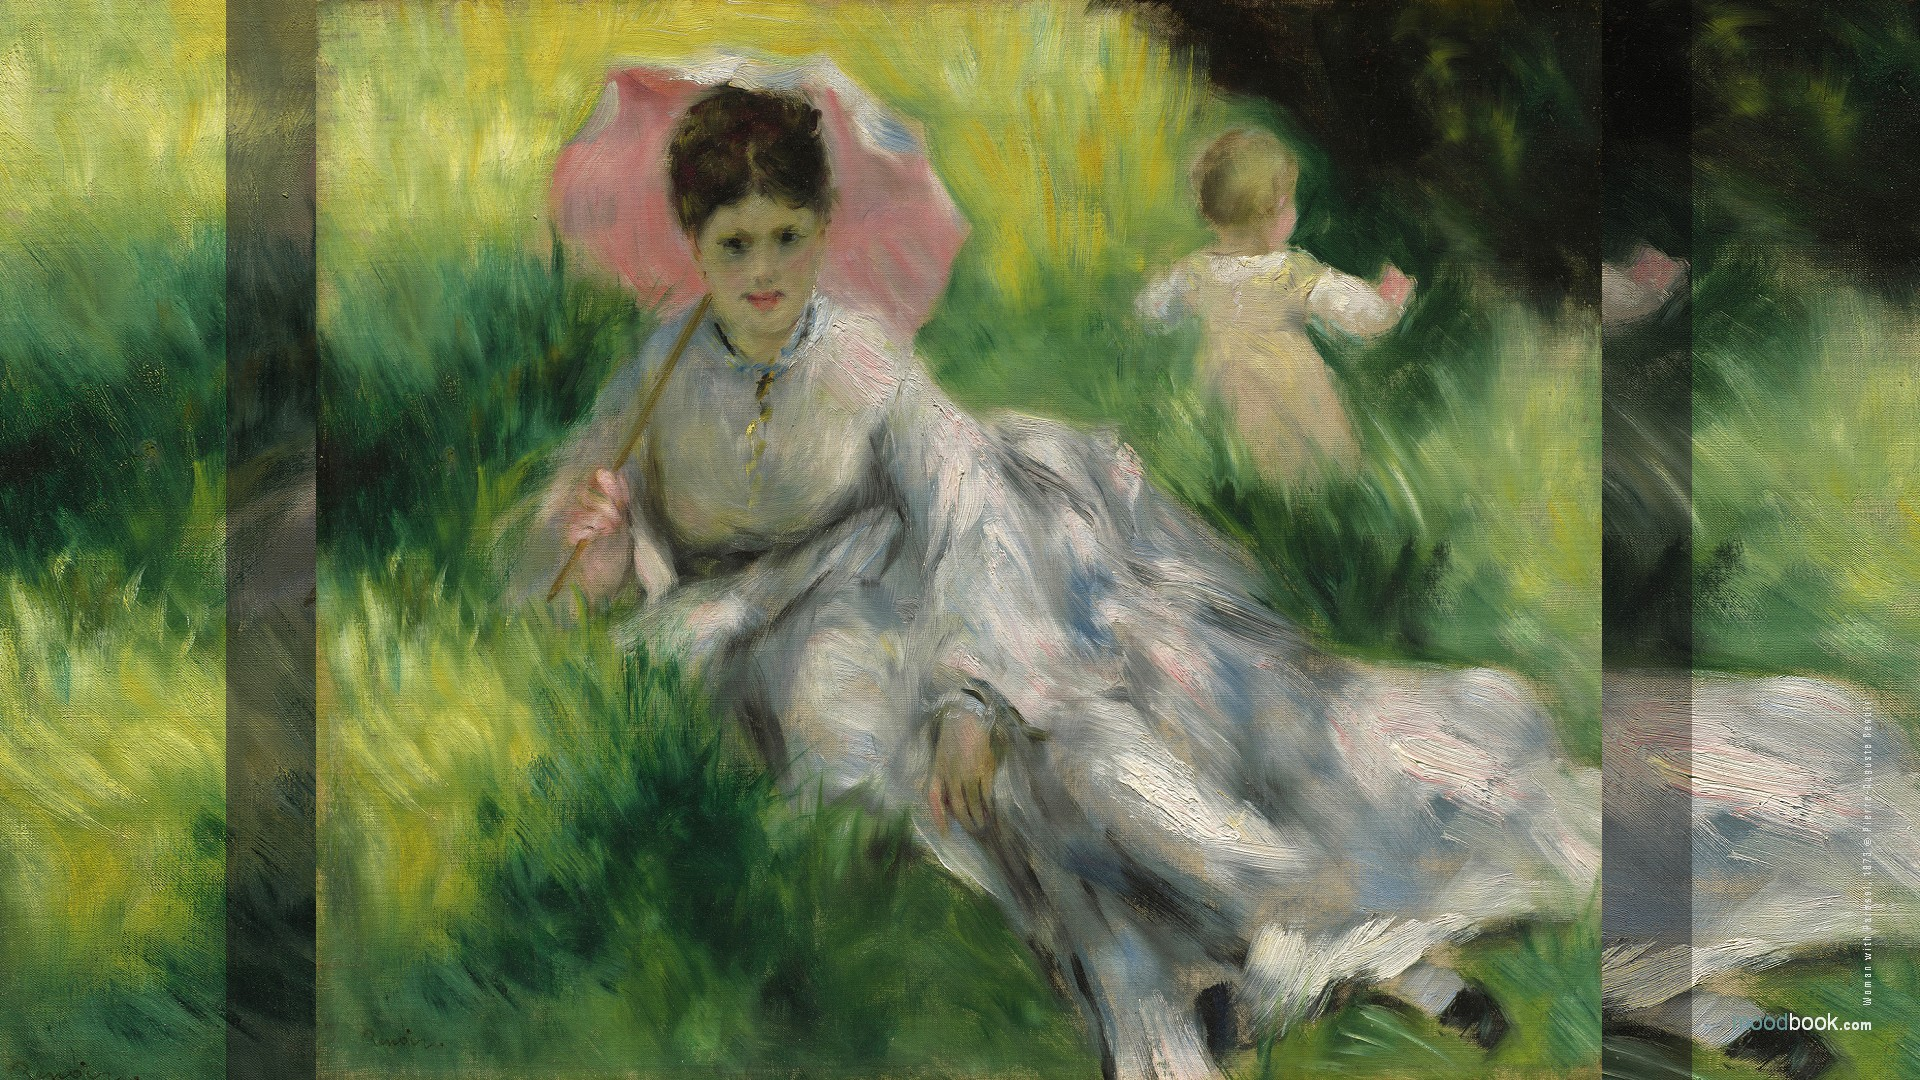 a history of painting during the impressionist era in france Impressionism emerged in france in the middle of 19th century many great painters adopted this art style  10 most famous impressionist paintings by anirudh - july 13, 2013 41977 8.